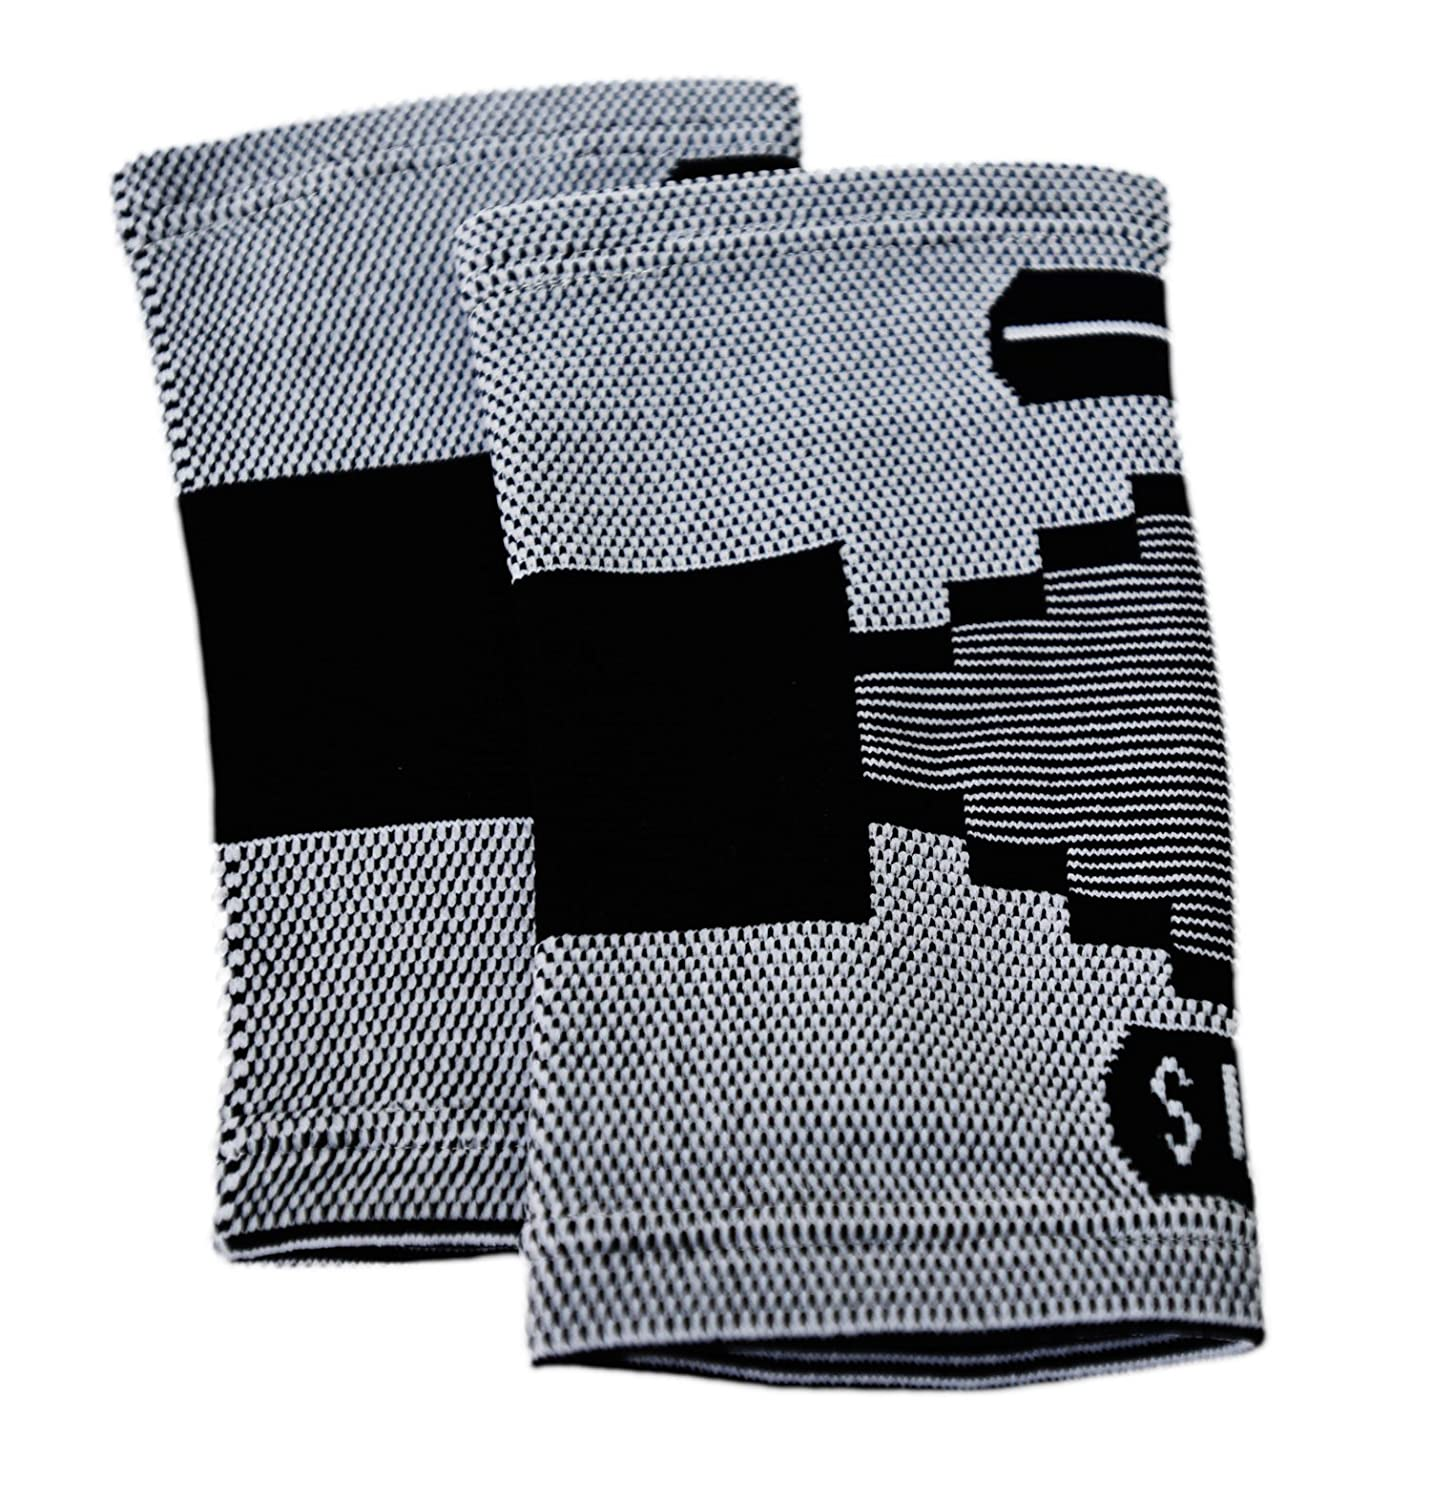 2 Classic Elbow Support Sleeves By Susama: Medium/Large - #1 Tennis Elbow Brace for Men + Women -...